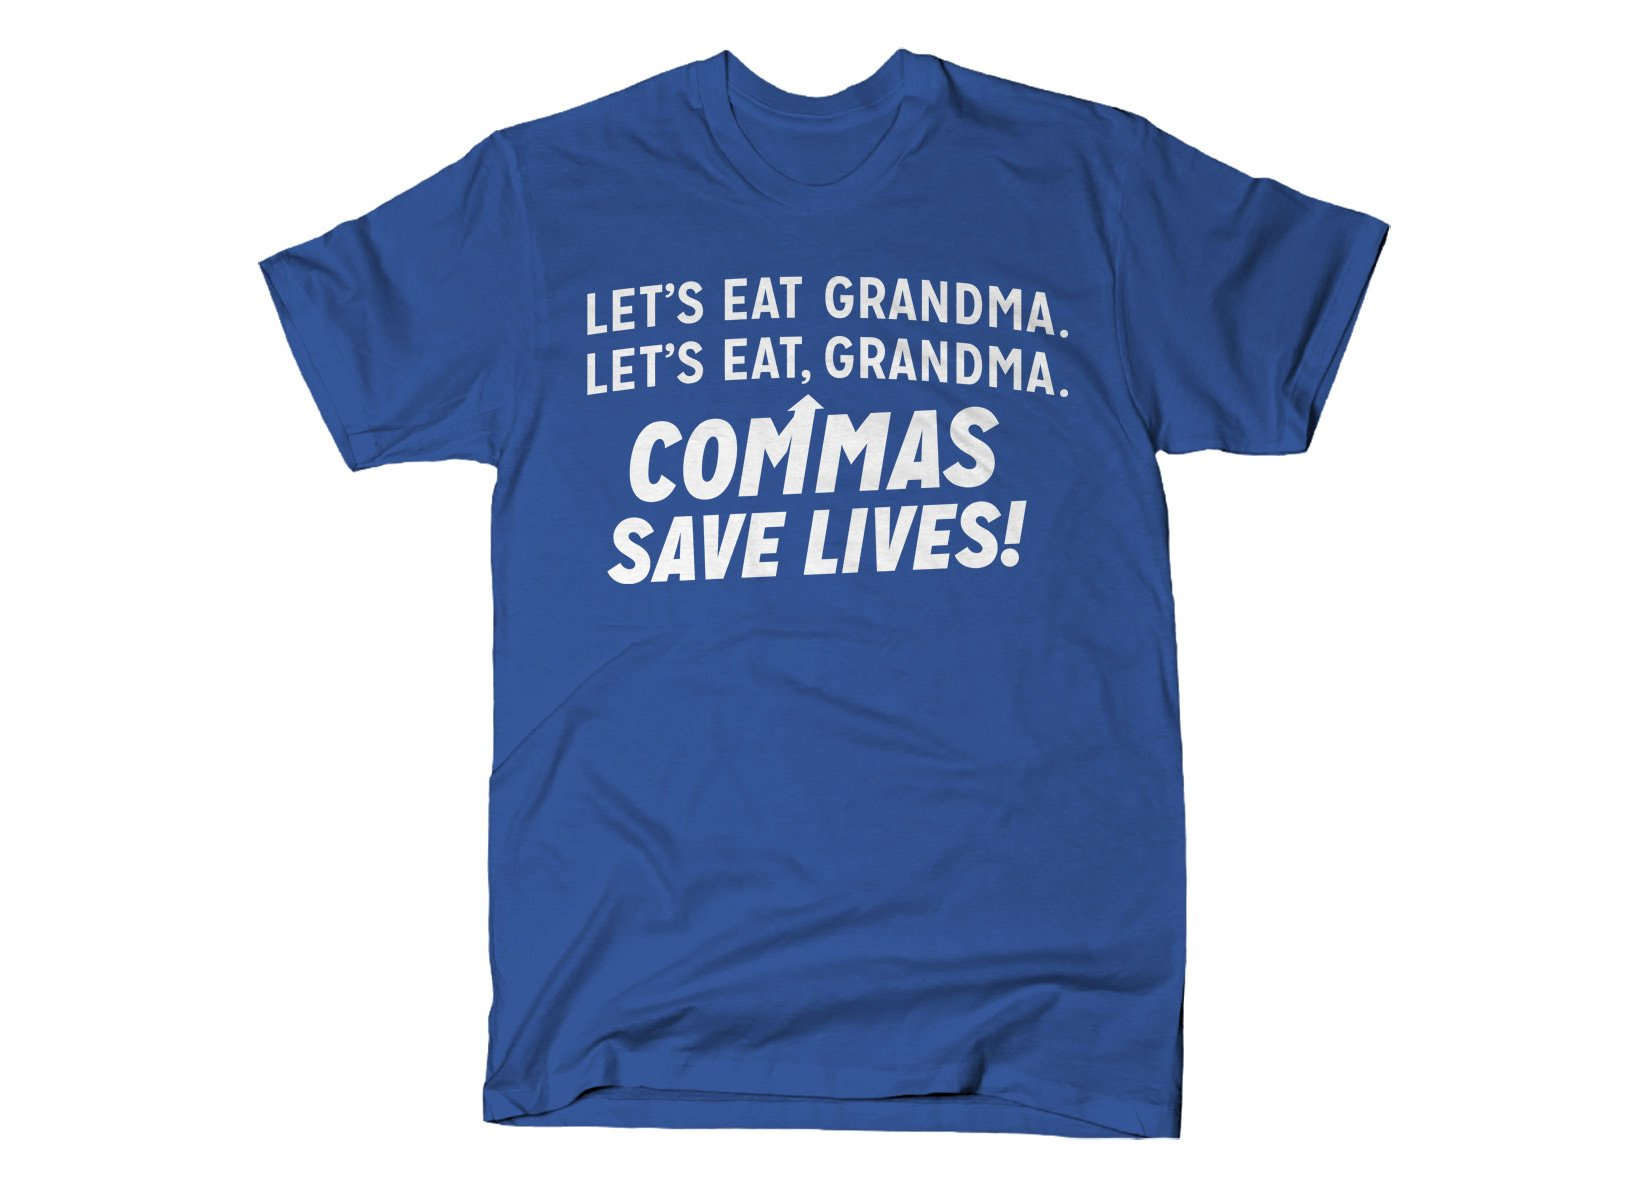 Commas Save Lives! on Mens T-Shirt